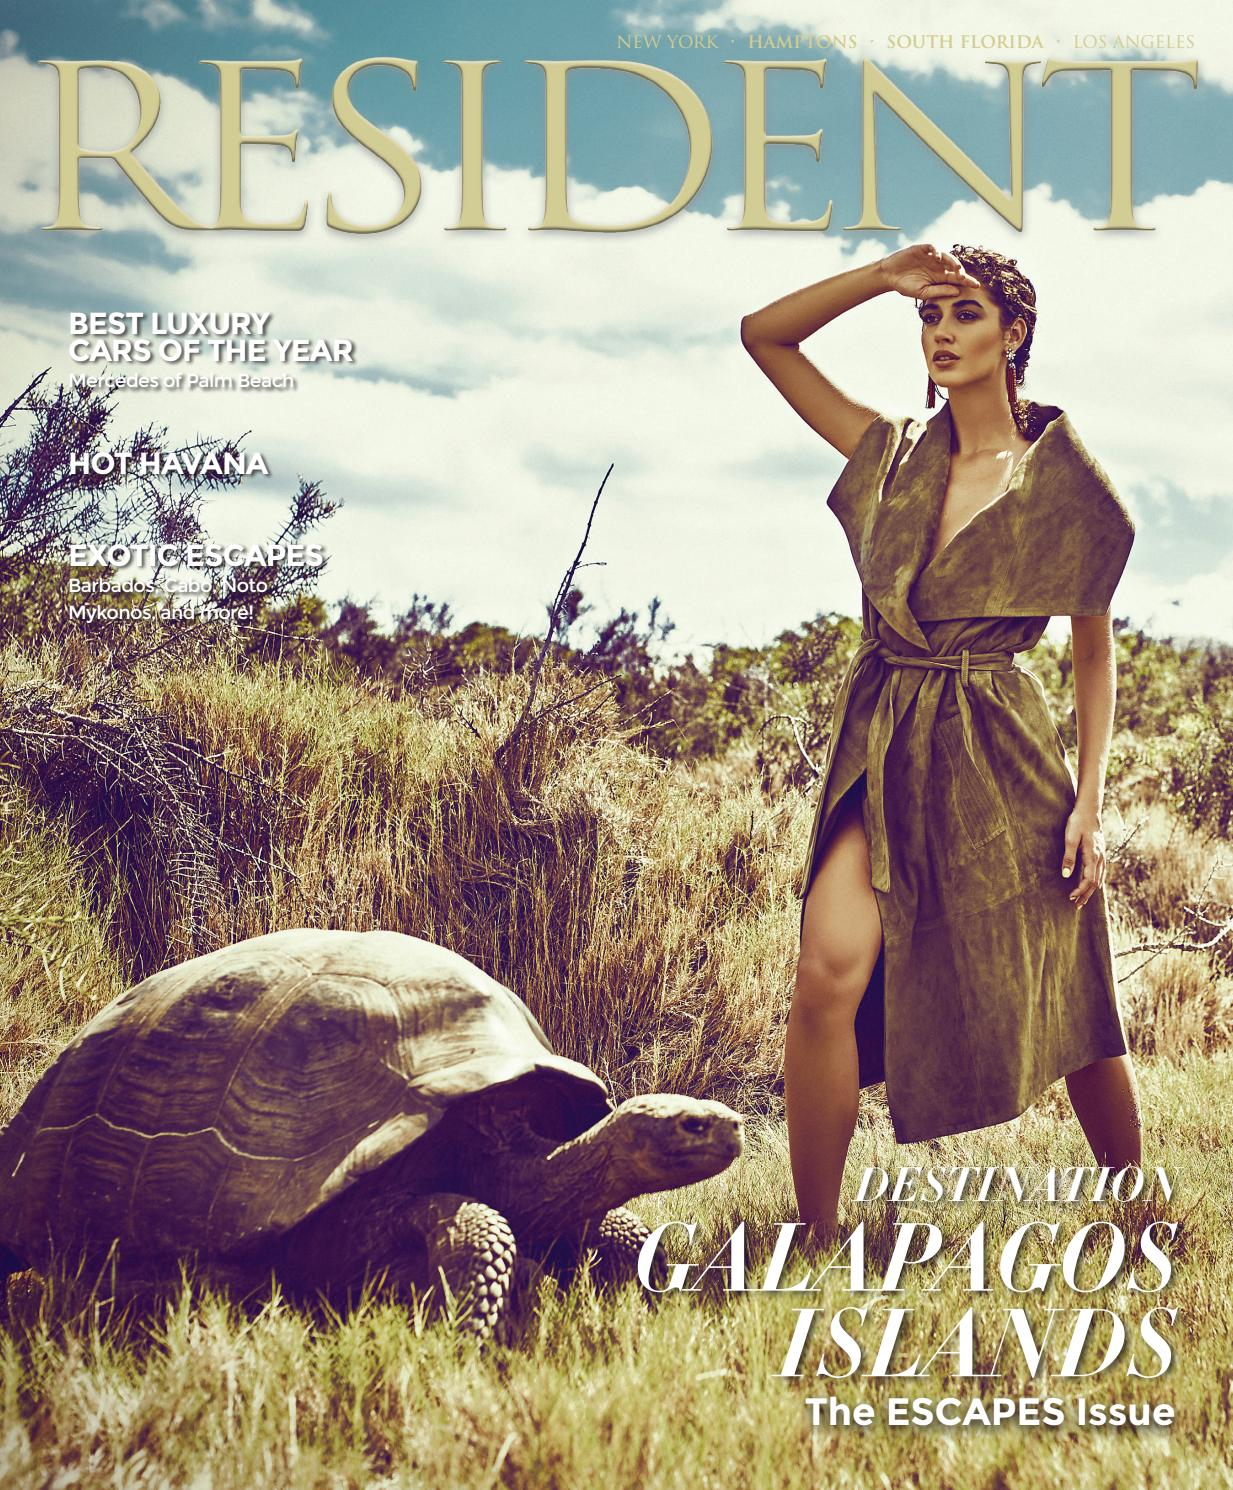 4897652e16912 Resident Magazine September 2017 Issue - The Galapagos Islands by Resident  Magazine - issuu